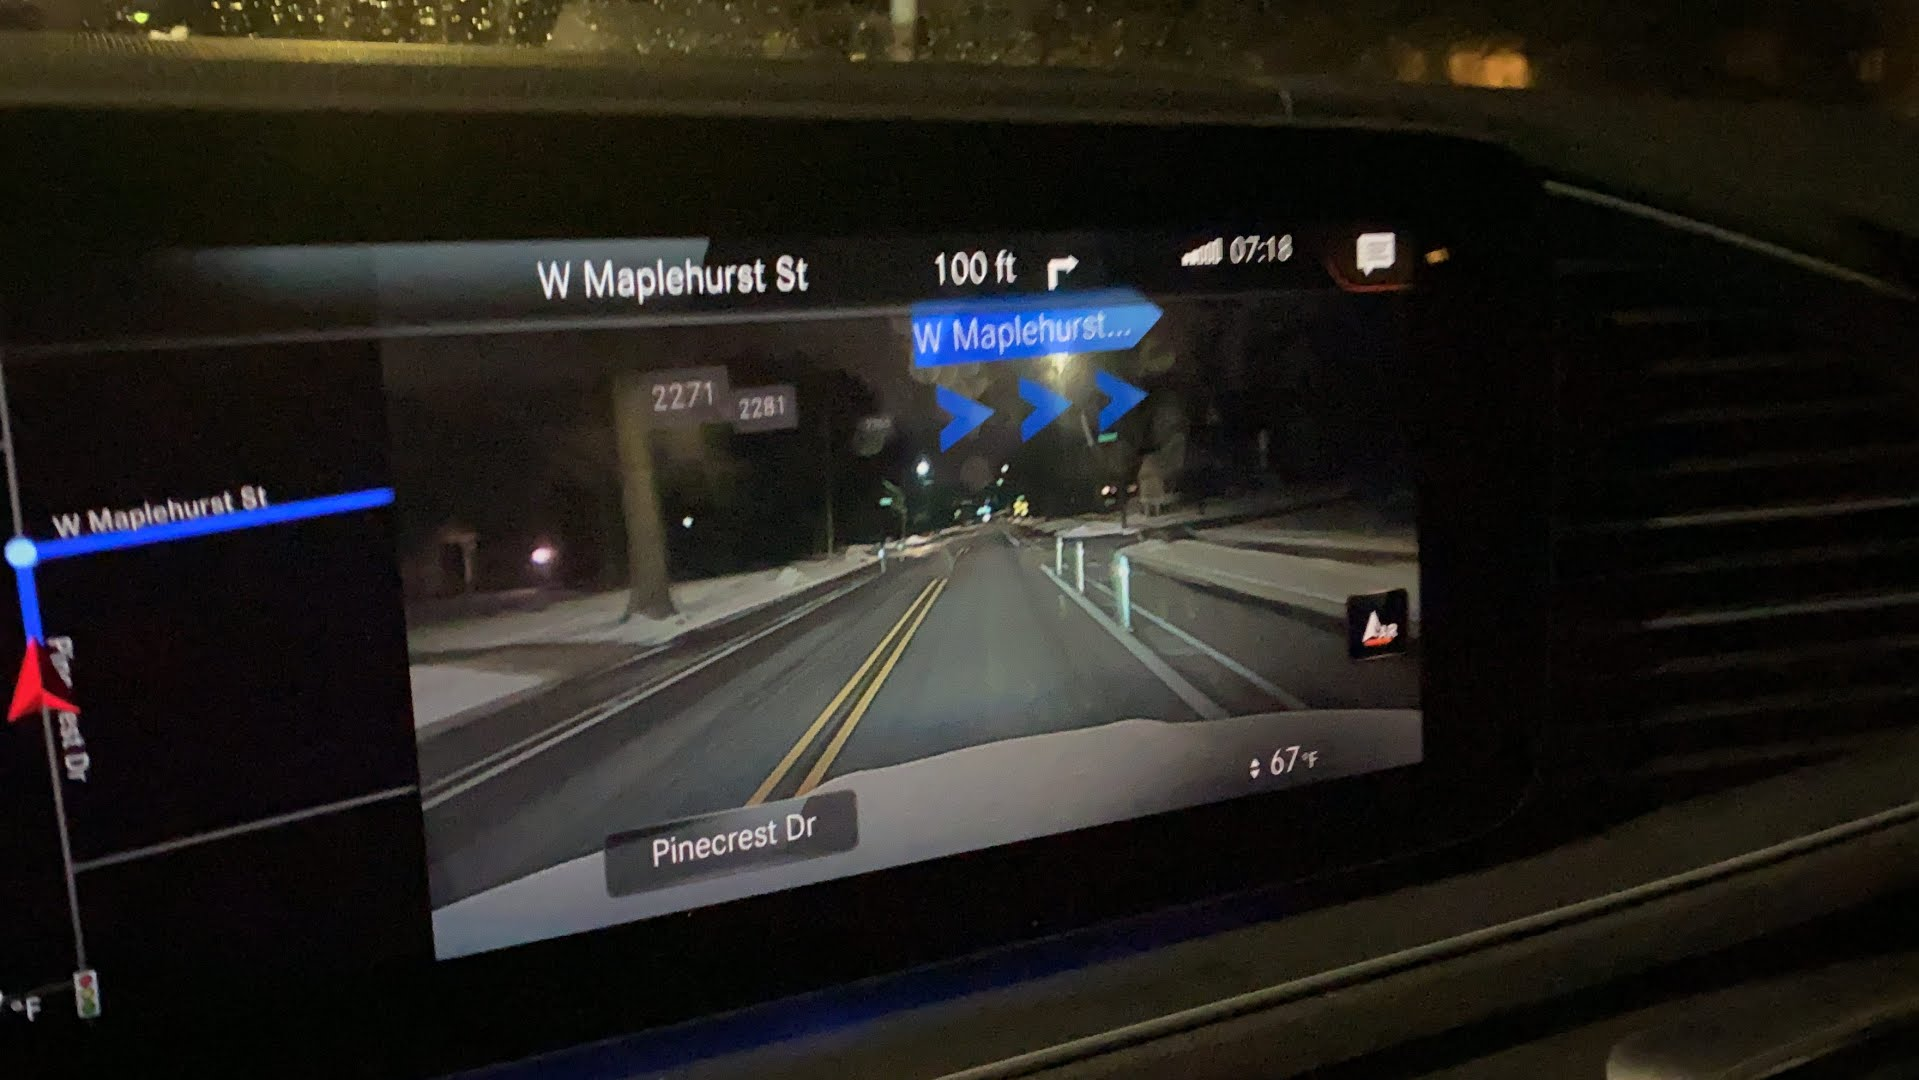 Navigation images sharper than your TV among tech improvements coming to vehicles